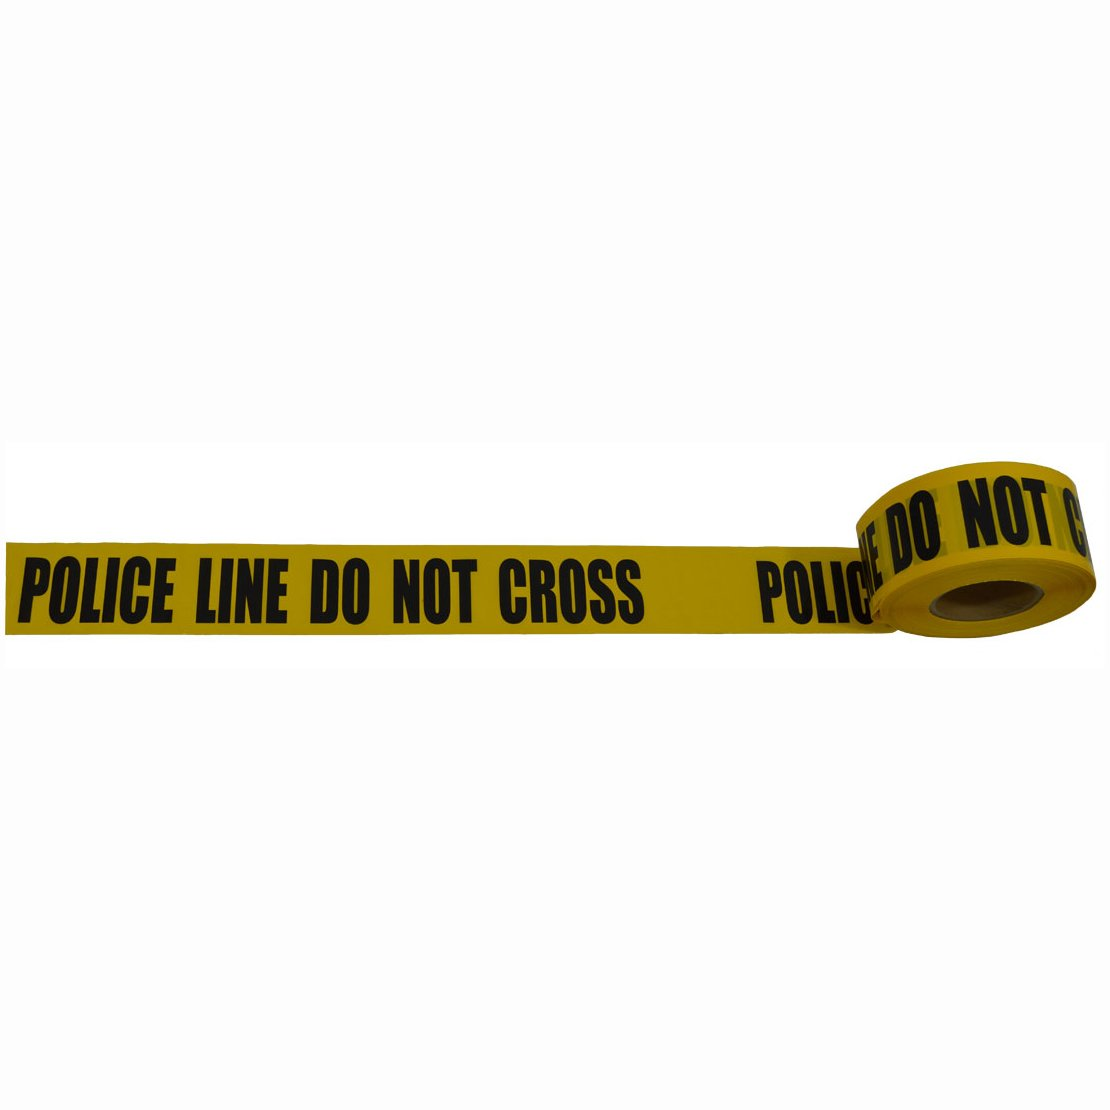 Petra Roc BT-POLICE Barricade Tape 2 Mil 3'' x 1000', Yellow/Black Printing, Police Line DO NOT Cross, Yellow